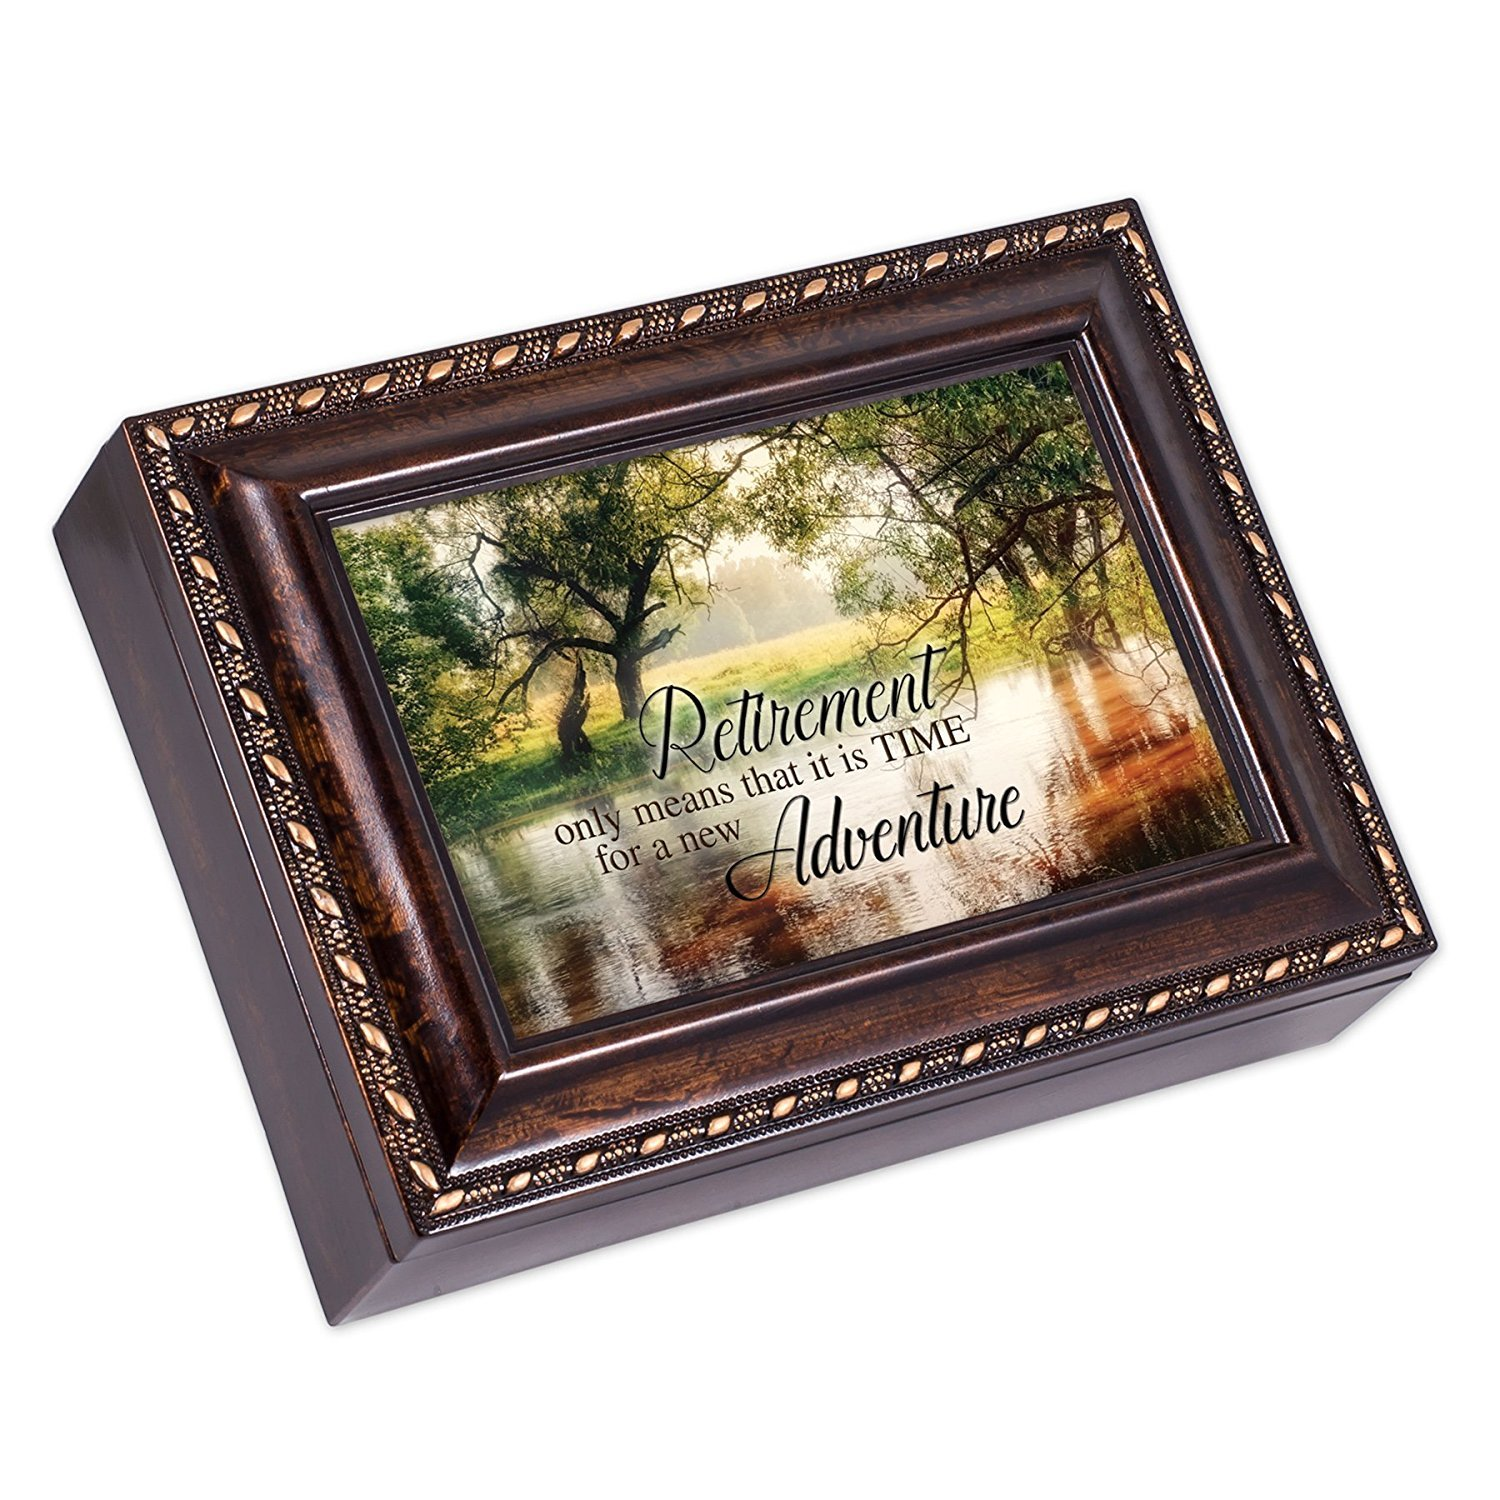 Cottage Garden A Friend Knows The Song of Your Heart Burlwood Rope Trim Jewelry Music Box Plays Canon in D